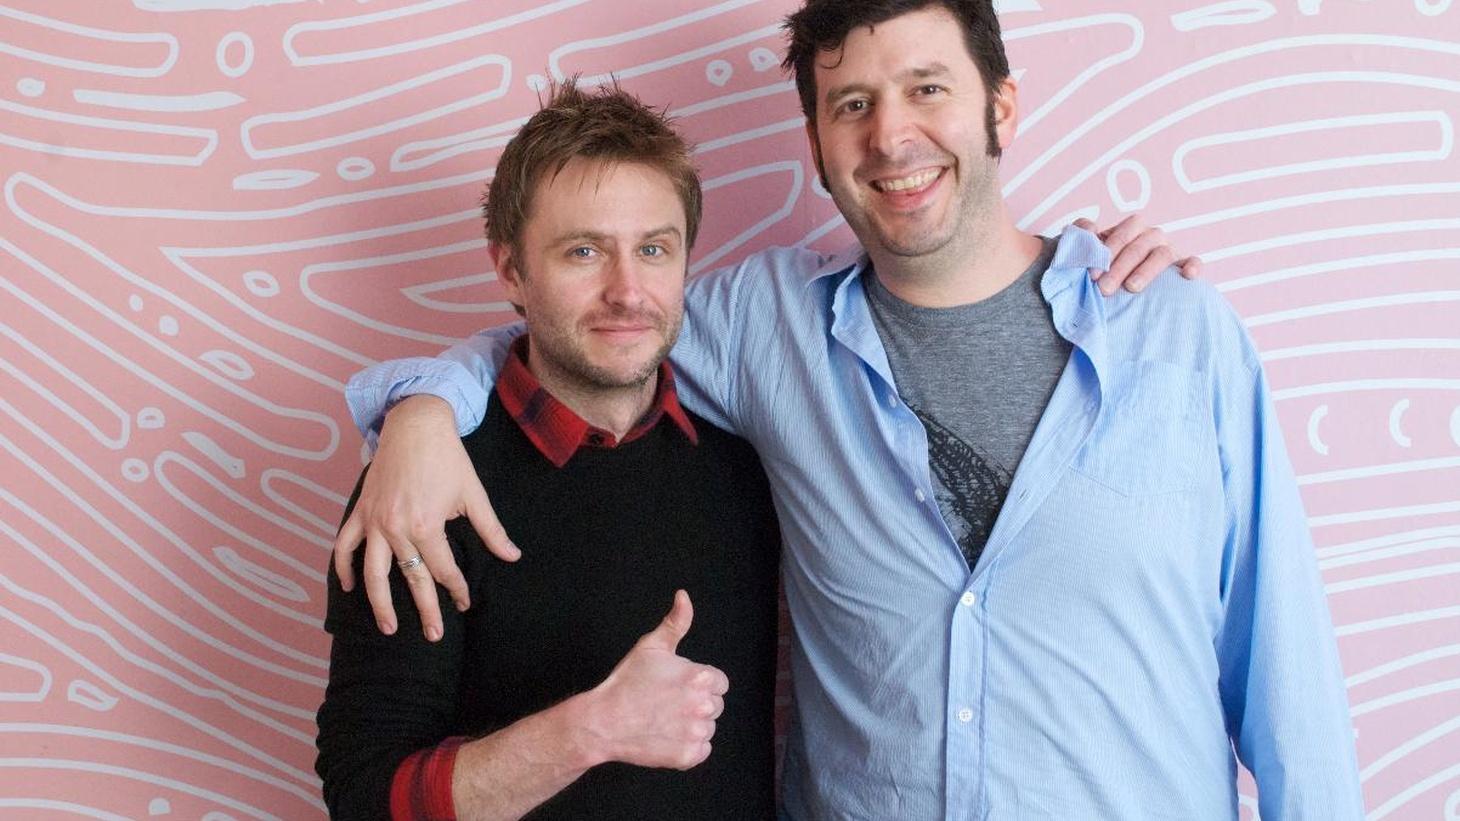 Comedian Chris Hardwick hosts Web Soup on G4 TV as well as the popular Nerdist Podcast. He tells us about the beginnings of his geekdom and gets serious about his favorite Radiohead song, as well as why Neil Finn is one of the best songwriters in the world.